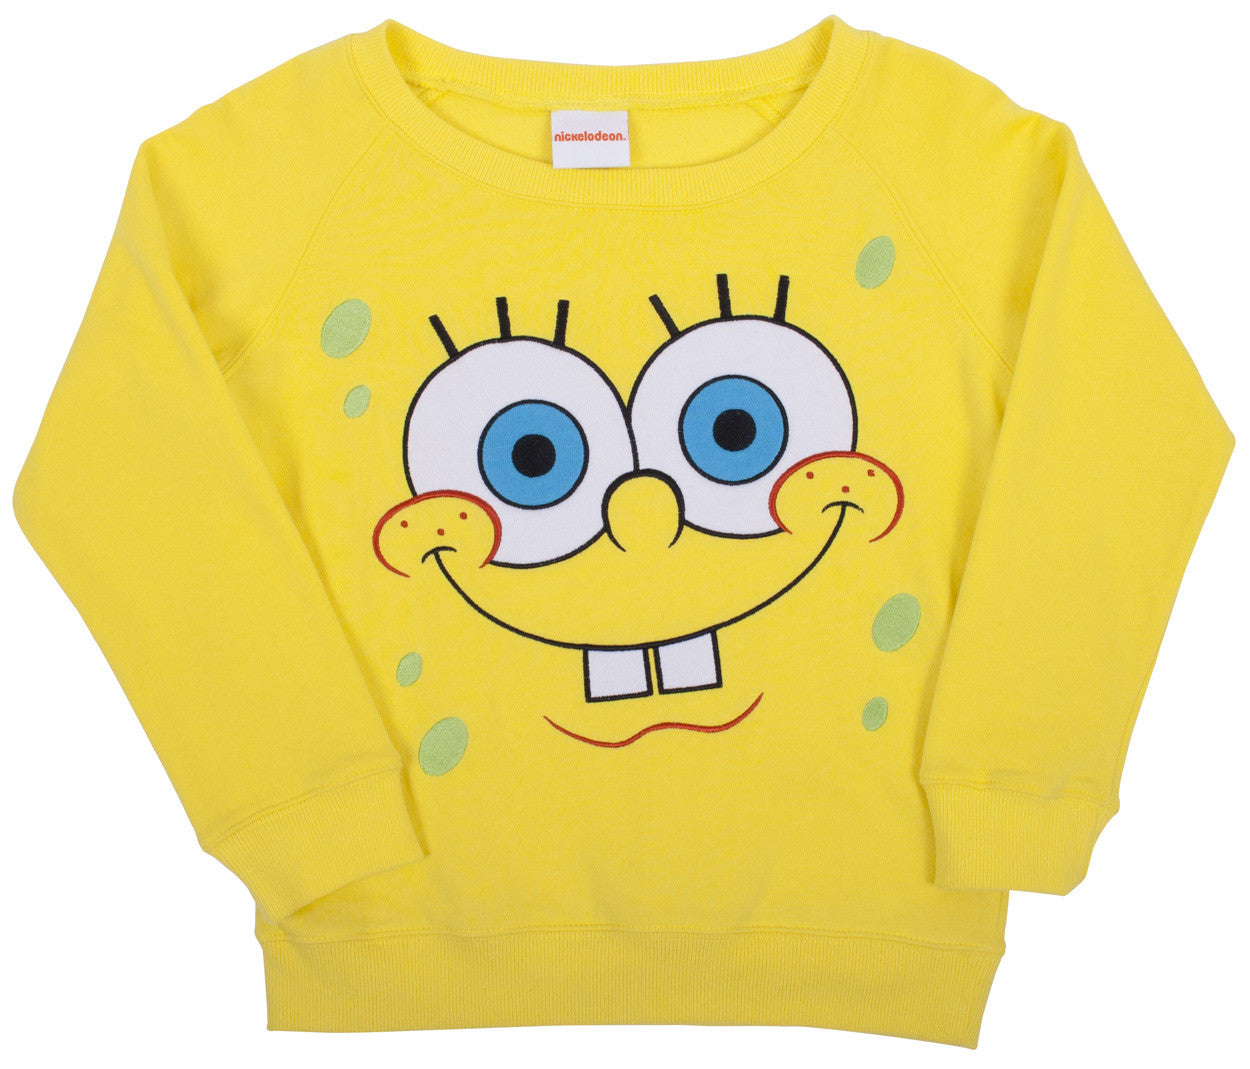 SpongeBob SquarePants Big Face Fleece sweatshirt